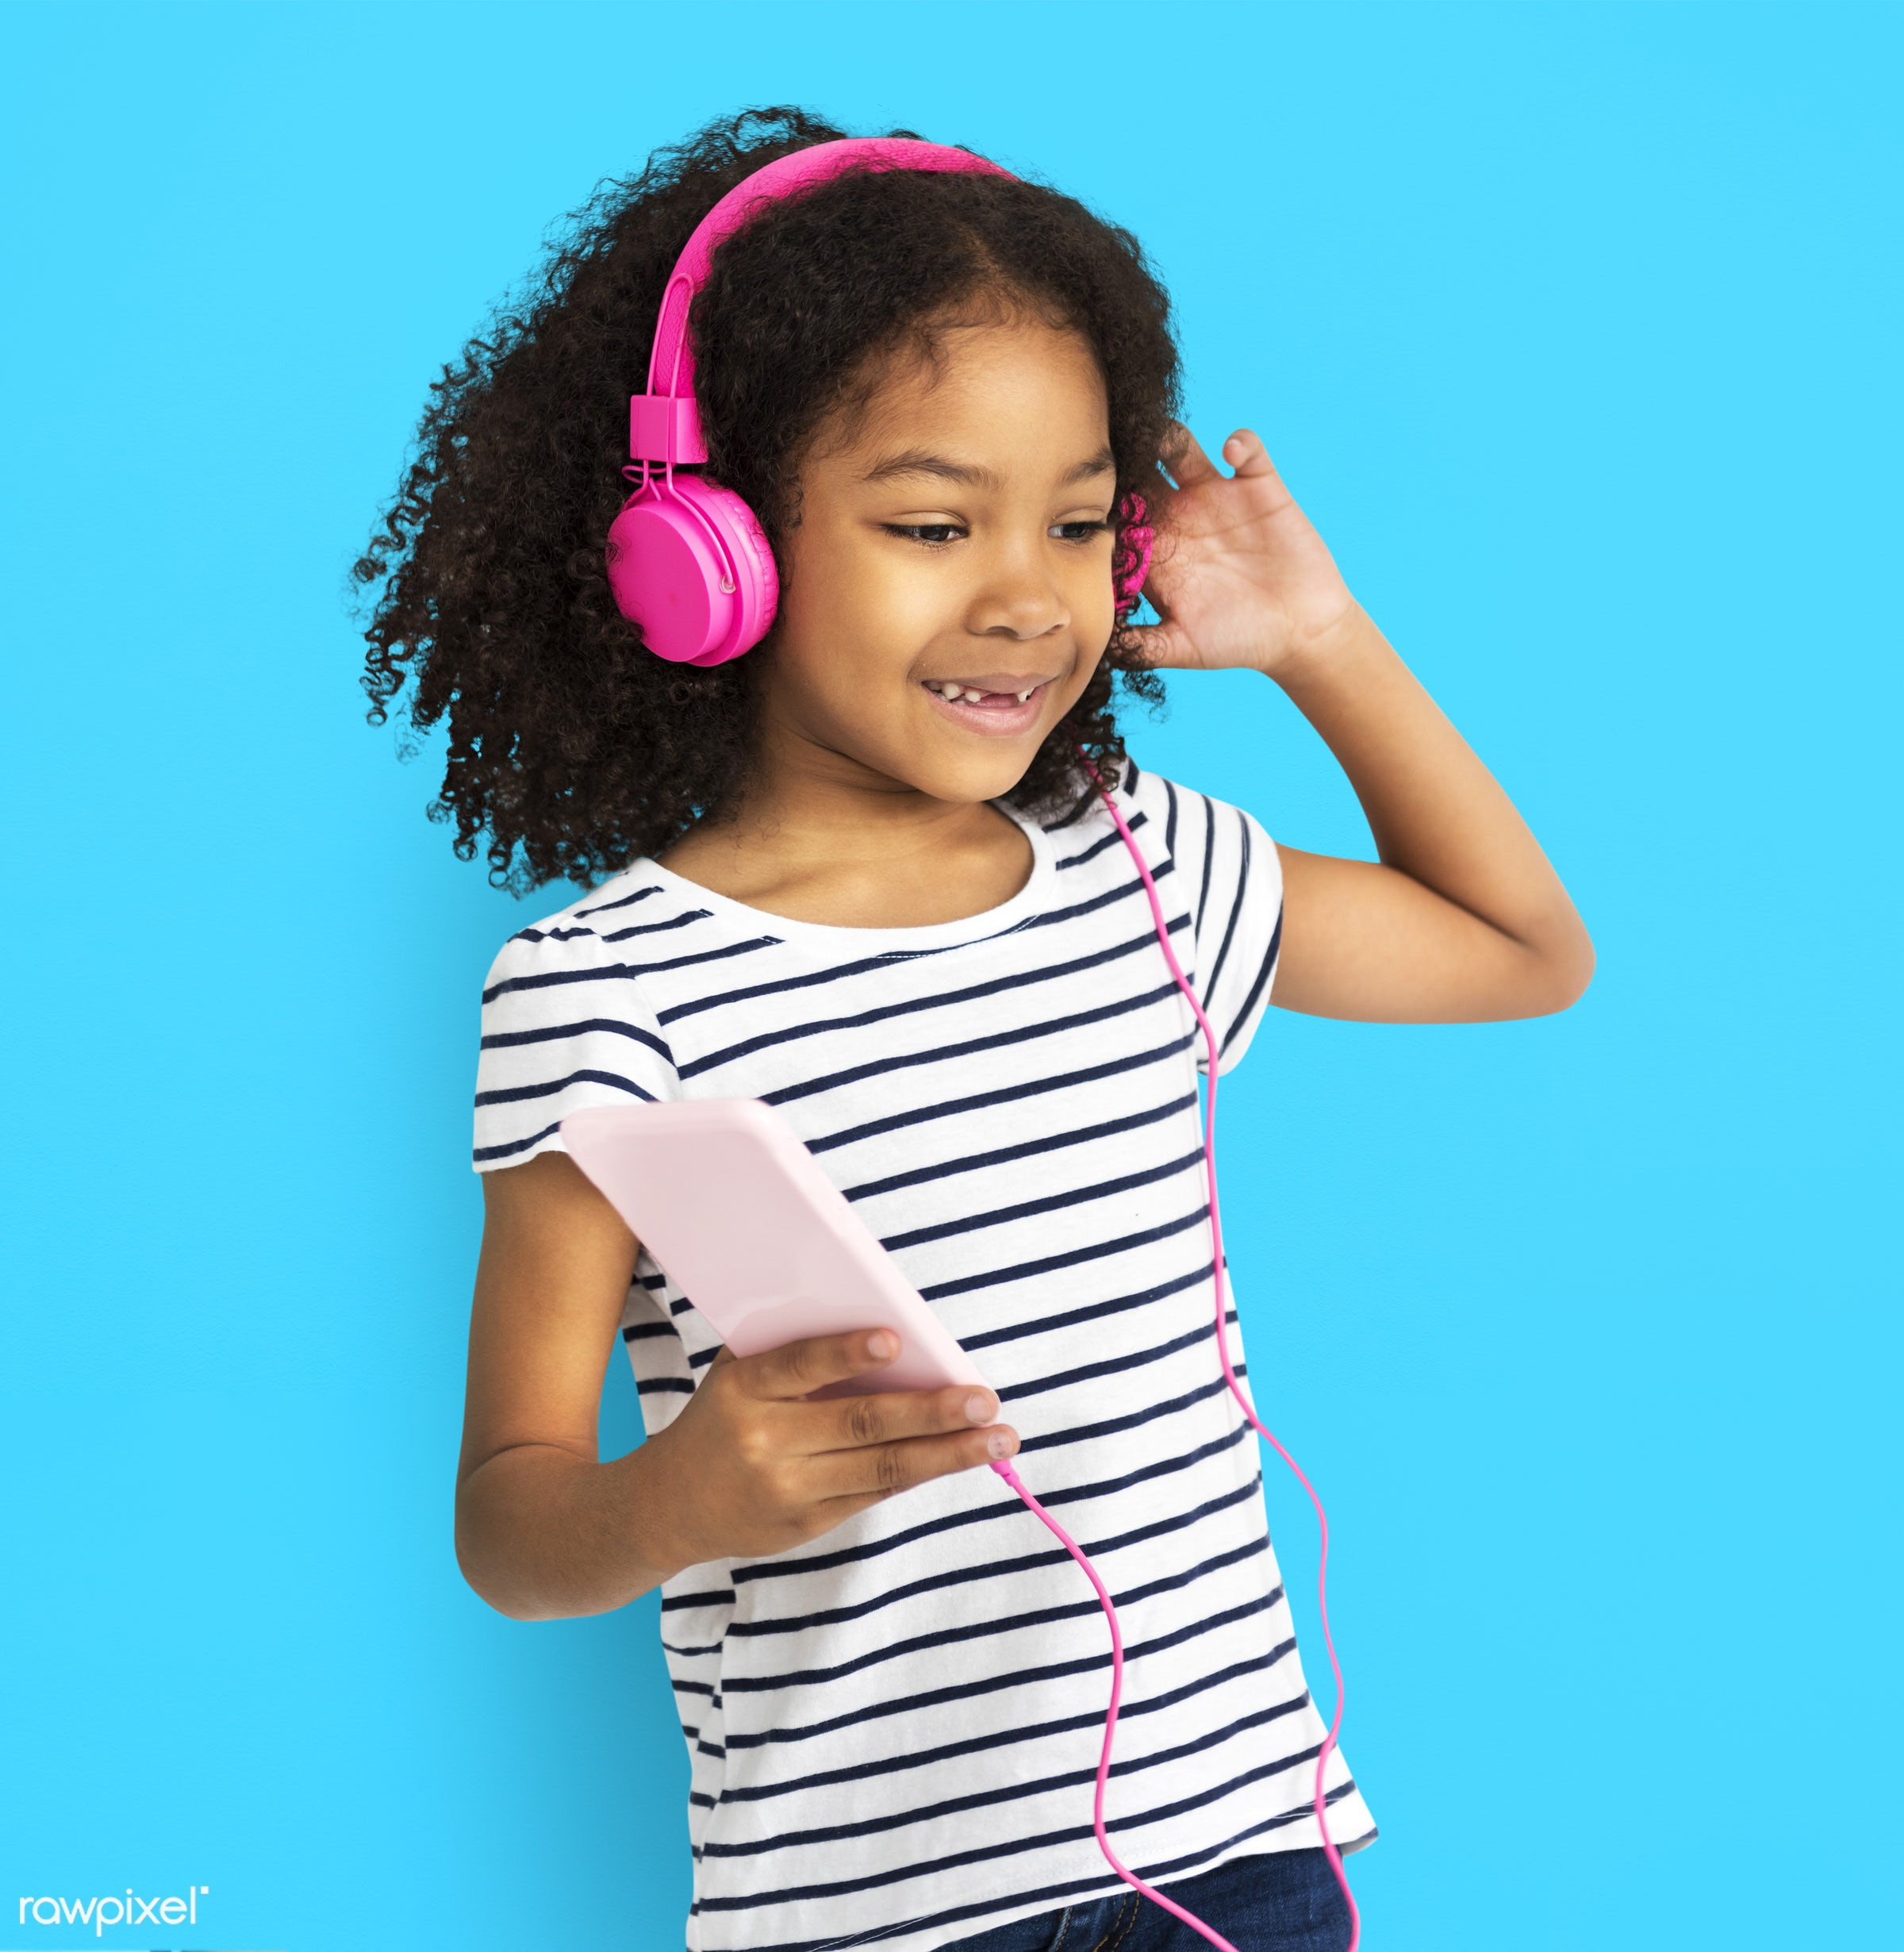 studio, expression, person, technology, cute, pretty, people, child, girl, happy, casual, childhood, listen, cheerful,...